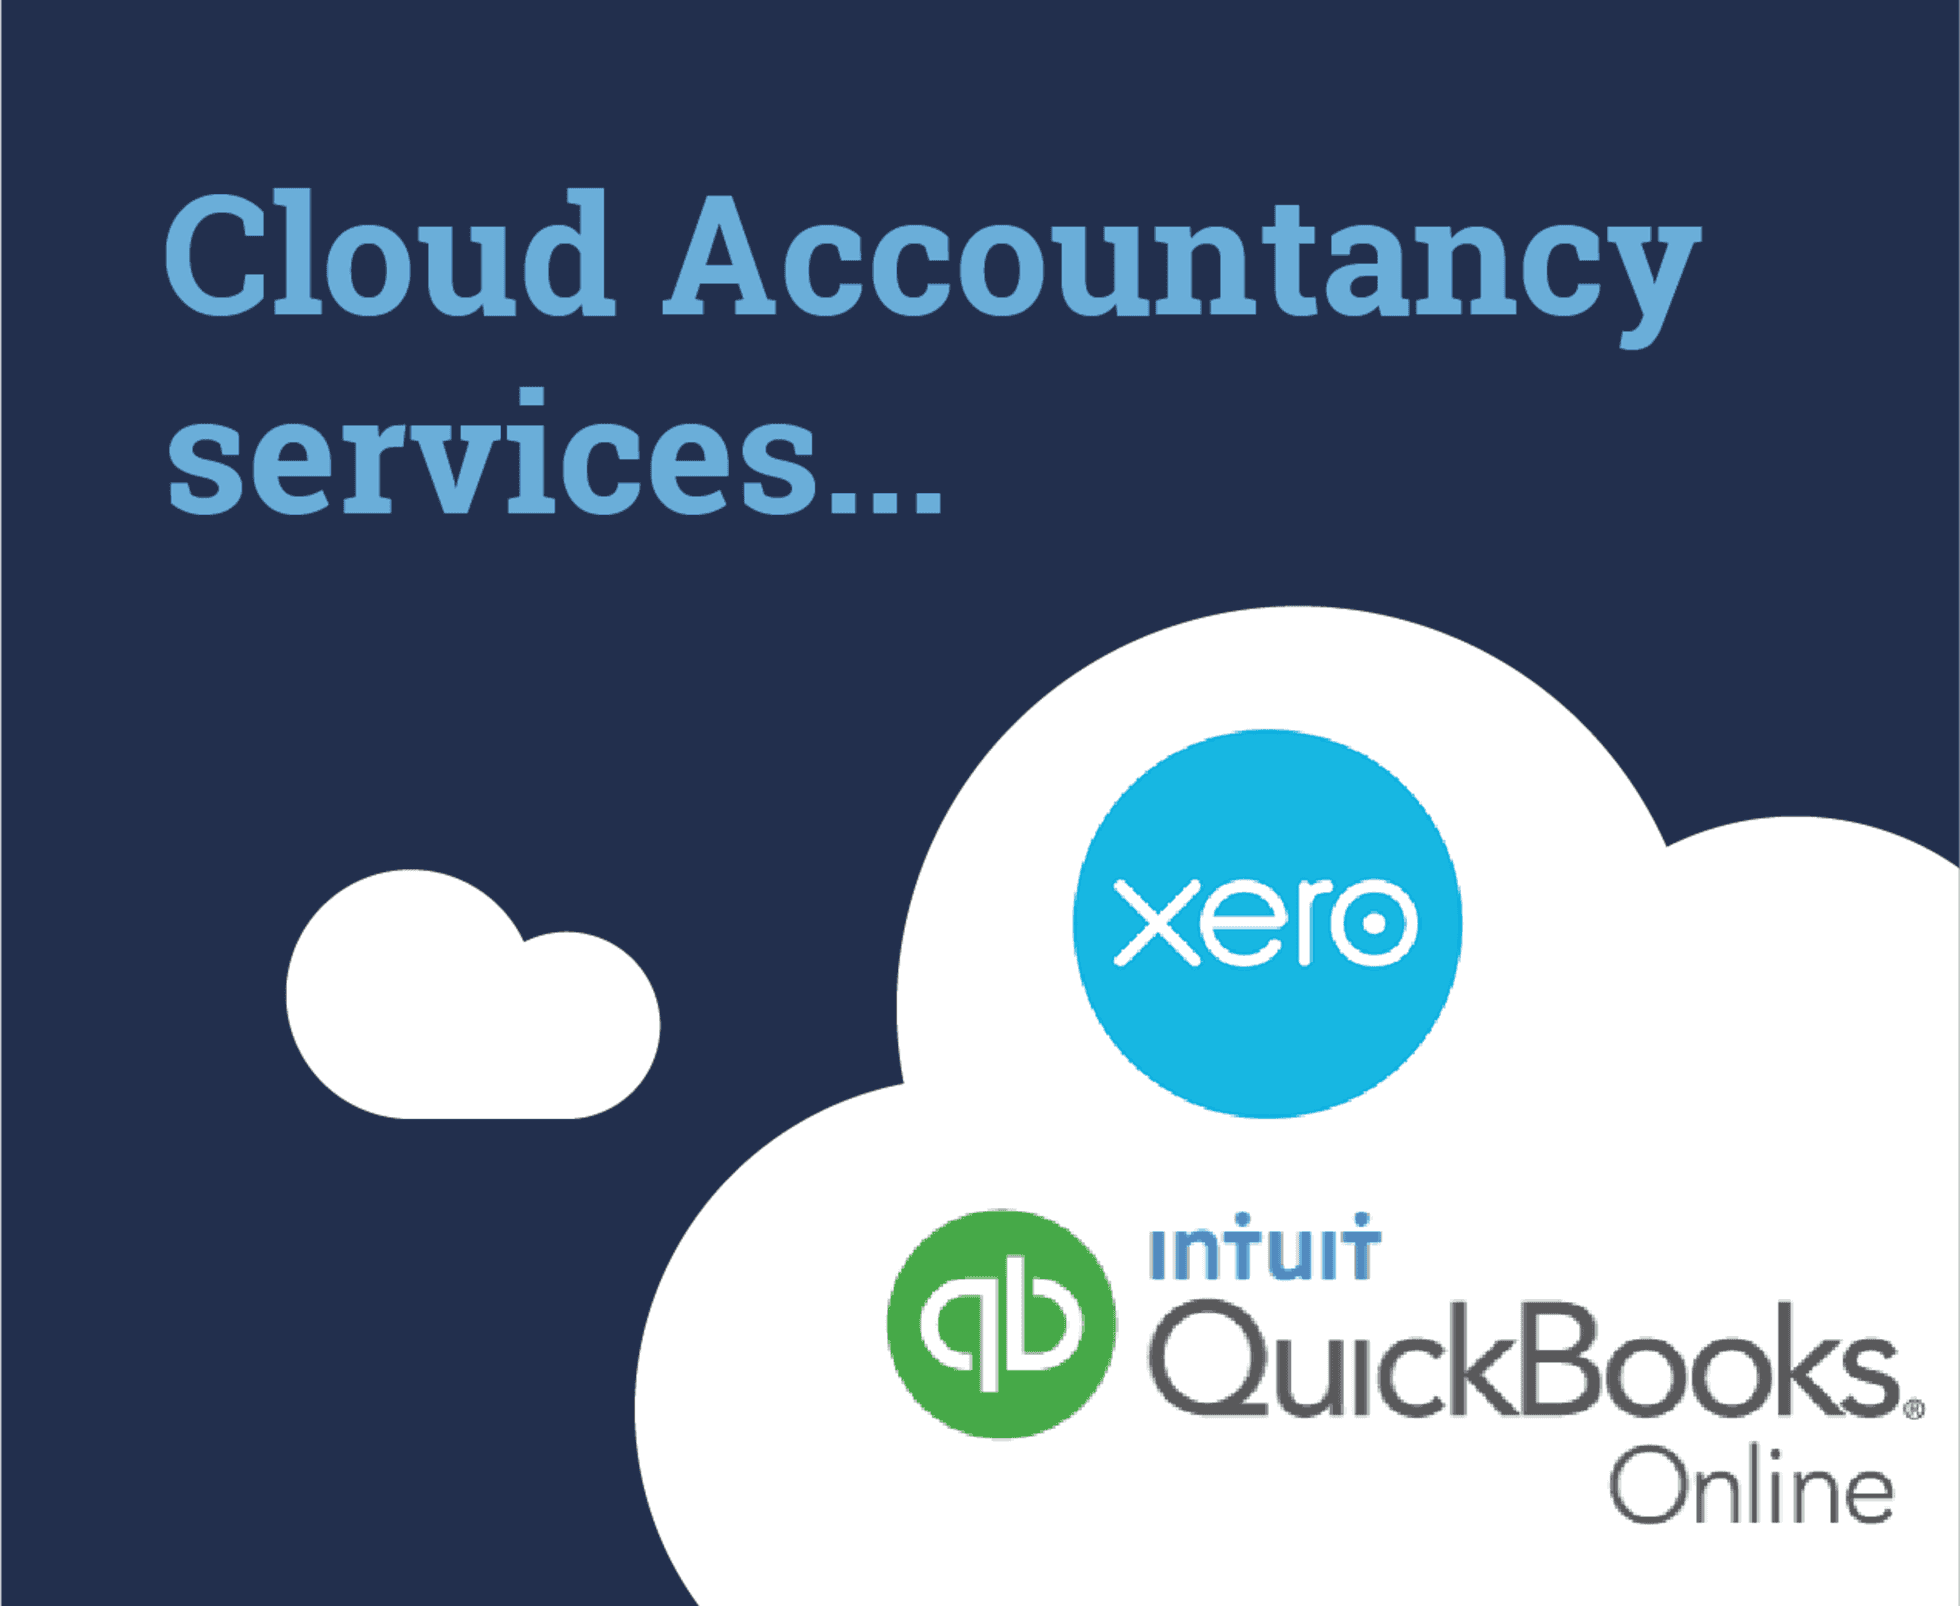 Cloud Accountancy Services